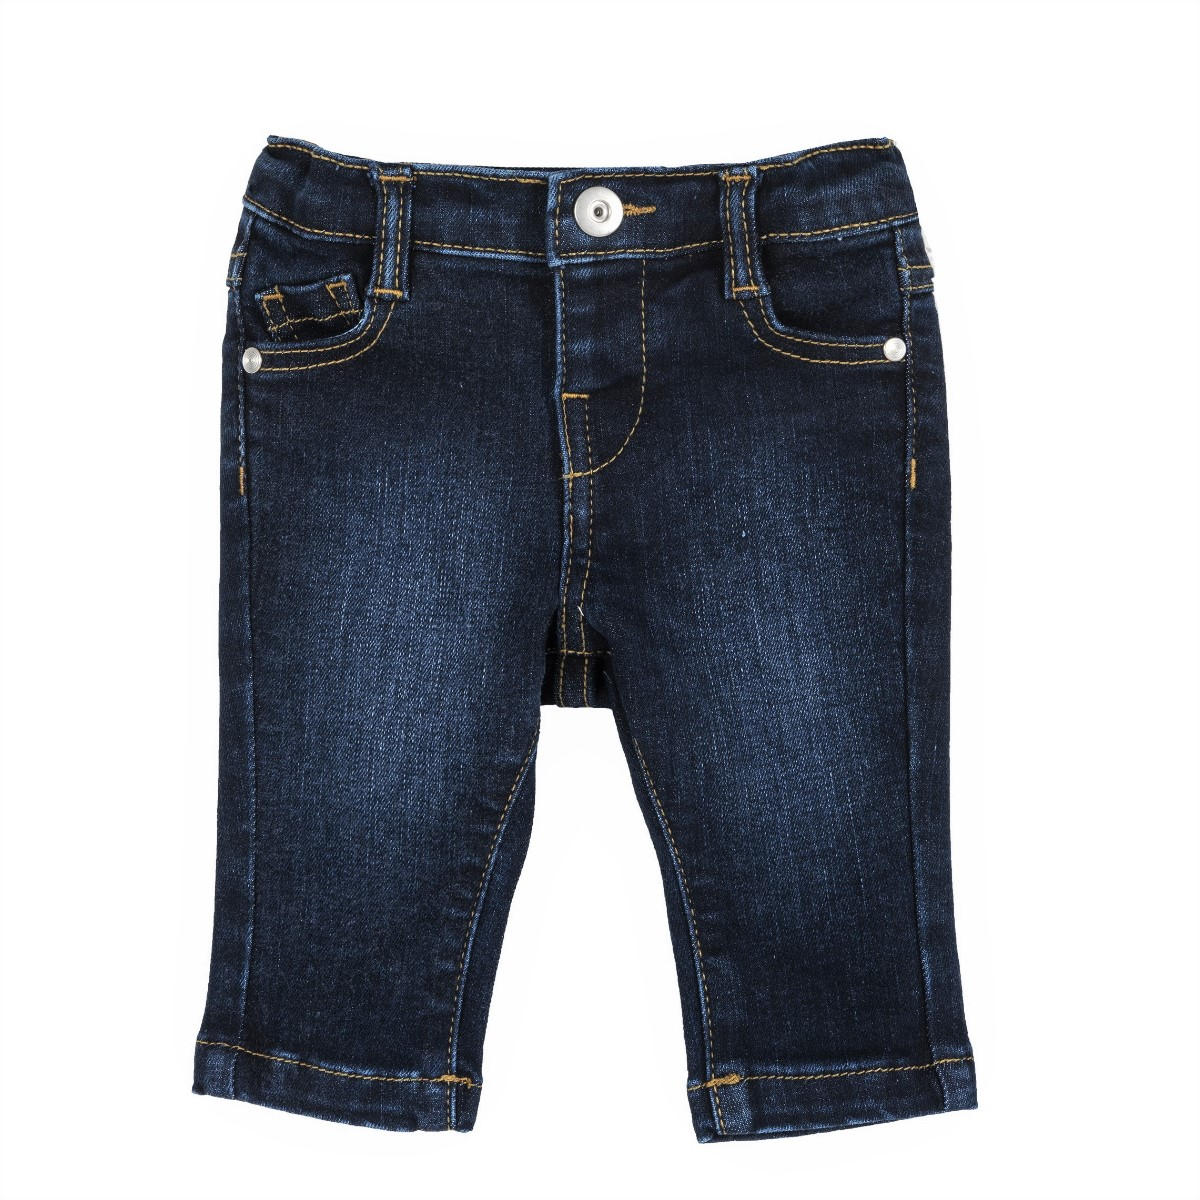 Jeans CHICCO 3mesi/4anni